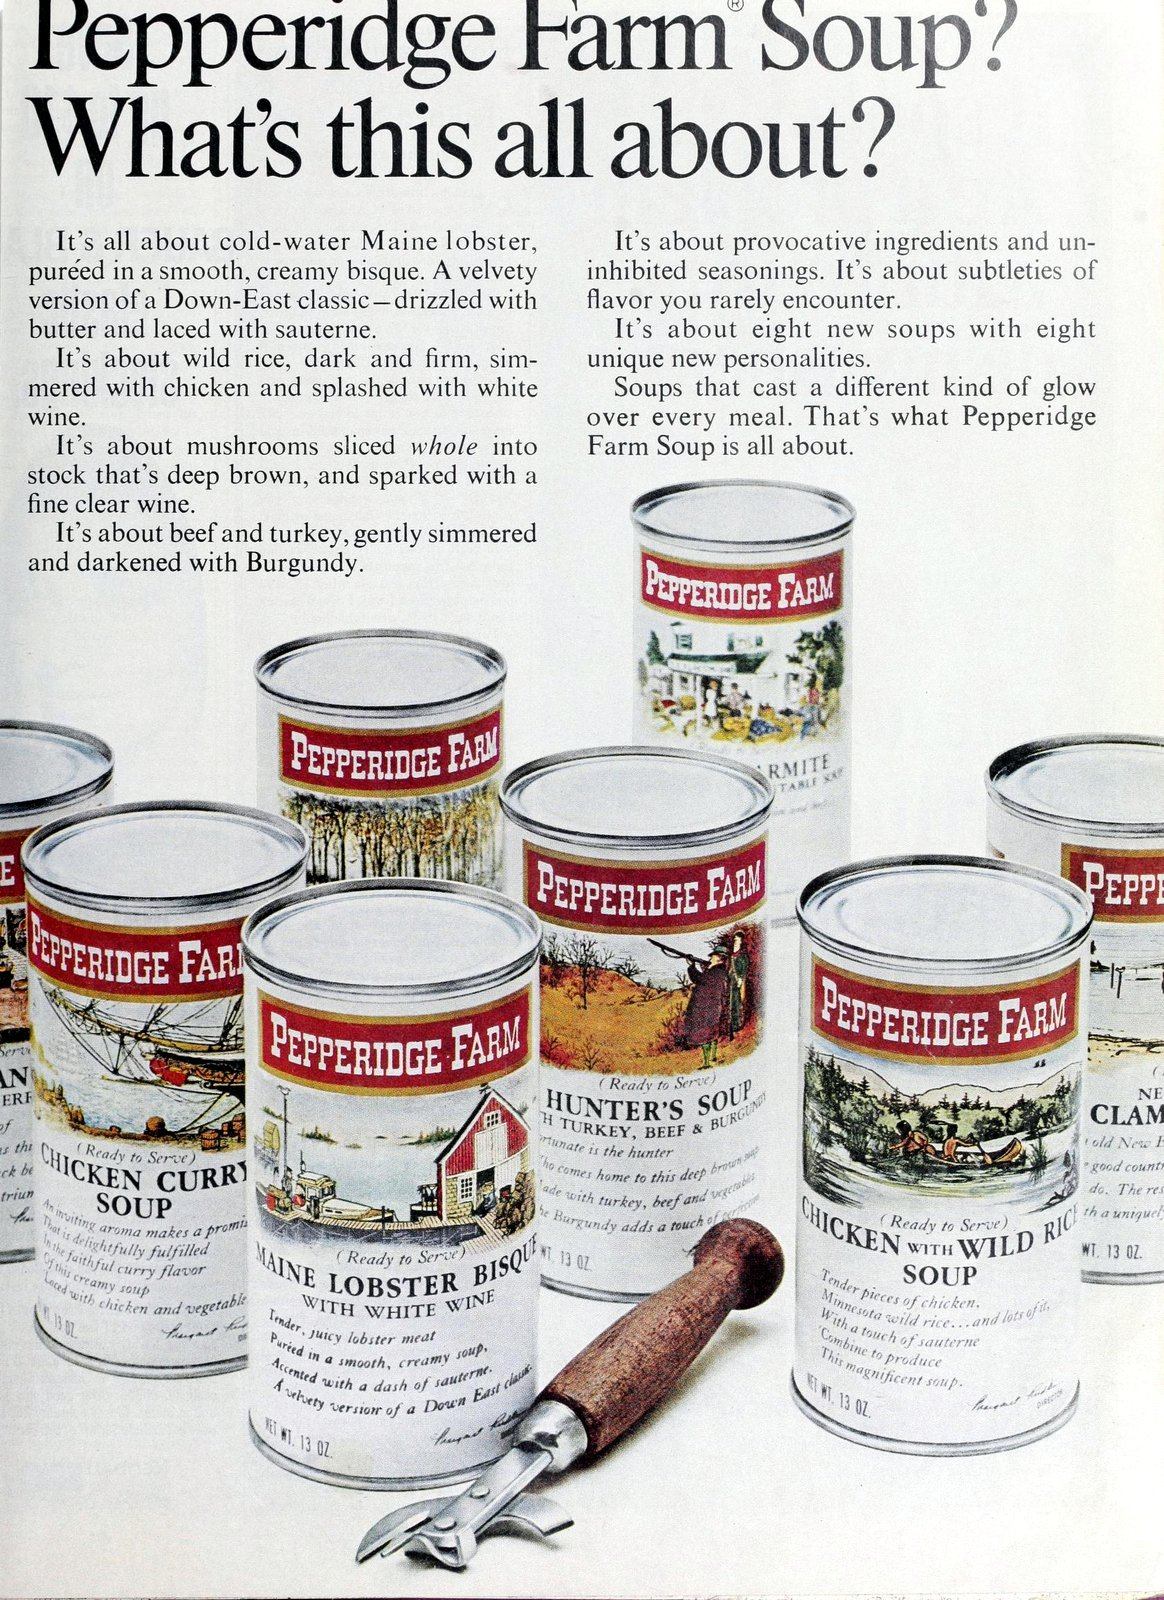 Pepperidge Farm canned soups from 1967